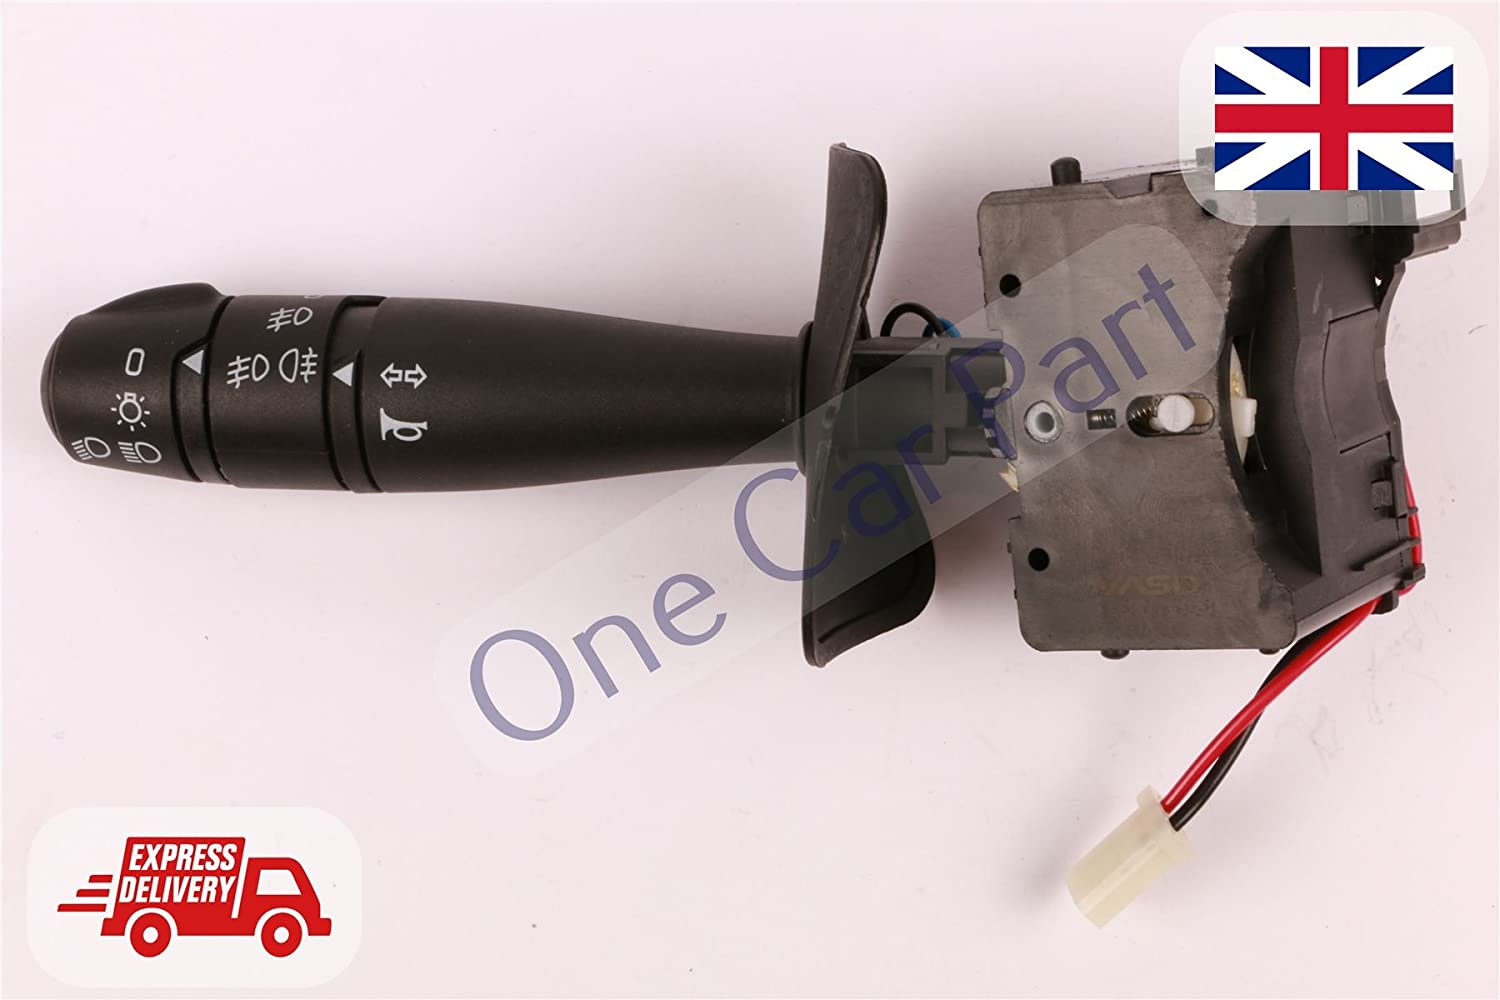 Car Wiper Steering Stalk Indicator Light Switch Control for Clio MK3 2005-2012 7701068114 Switch Steering Column Switch